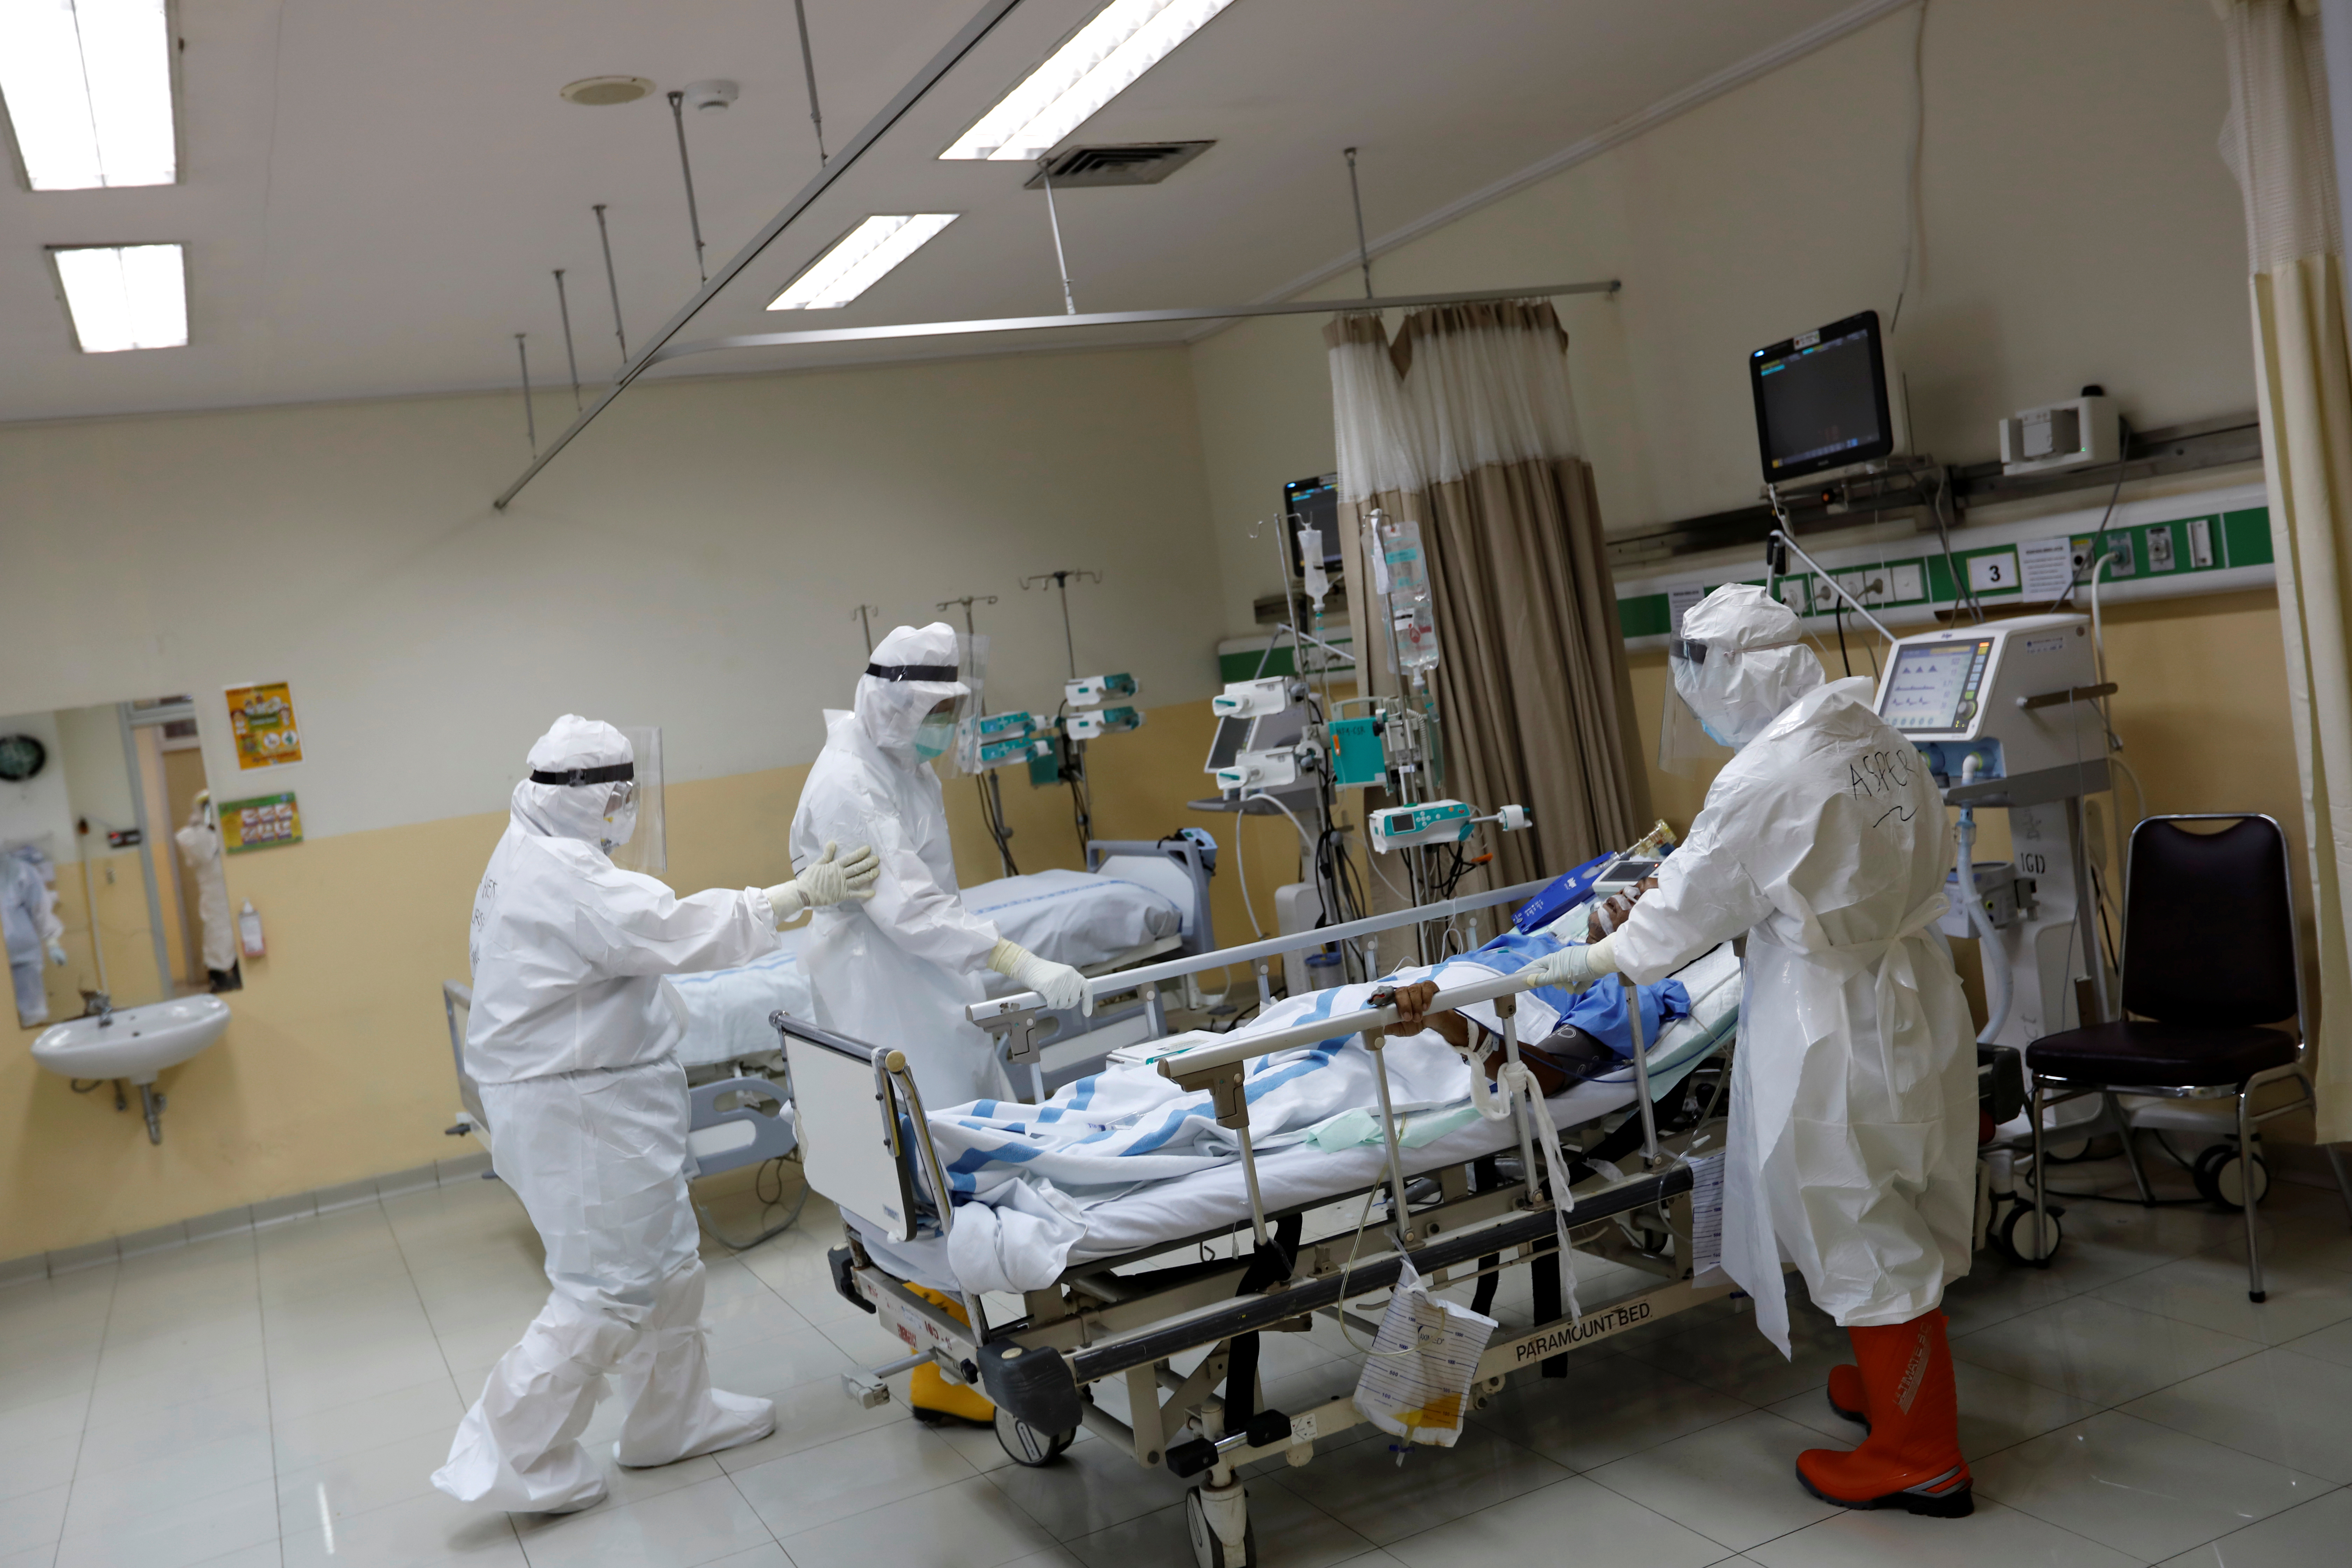 Health workers wearing protective suits prepare to transfer a patient to the surgical room from the Intensive Care Unit (ICU) for the coronavirus disease (COVID-19) patients at Persahabatan Hospital in Jakarta, Indonesia, May 13, 2020. REUTERS/Willy Kurniawan